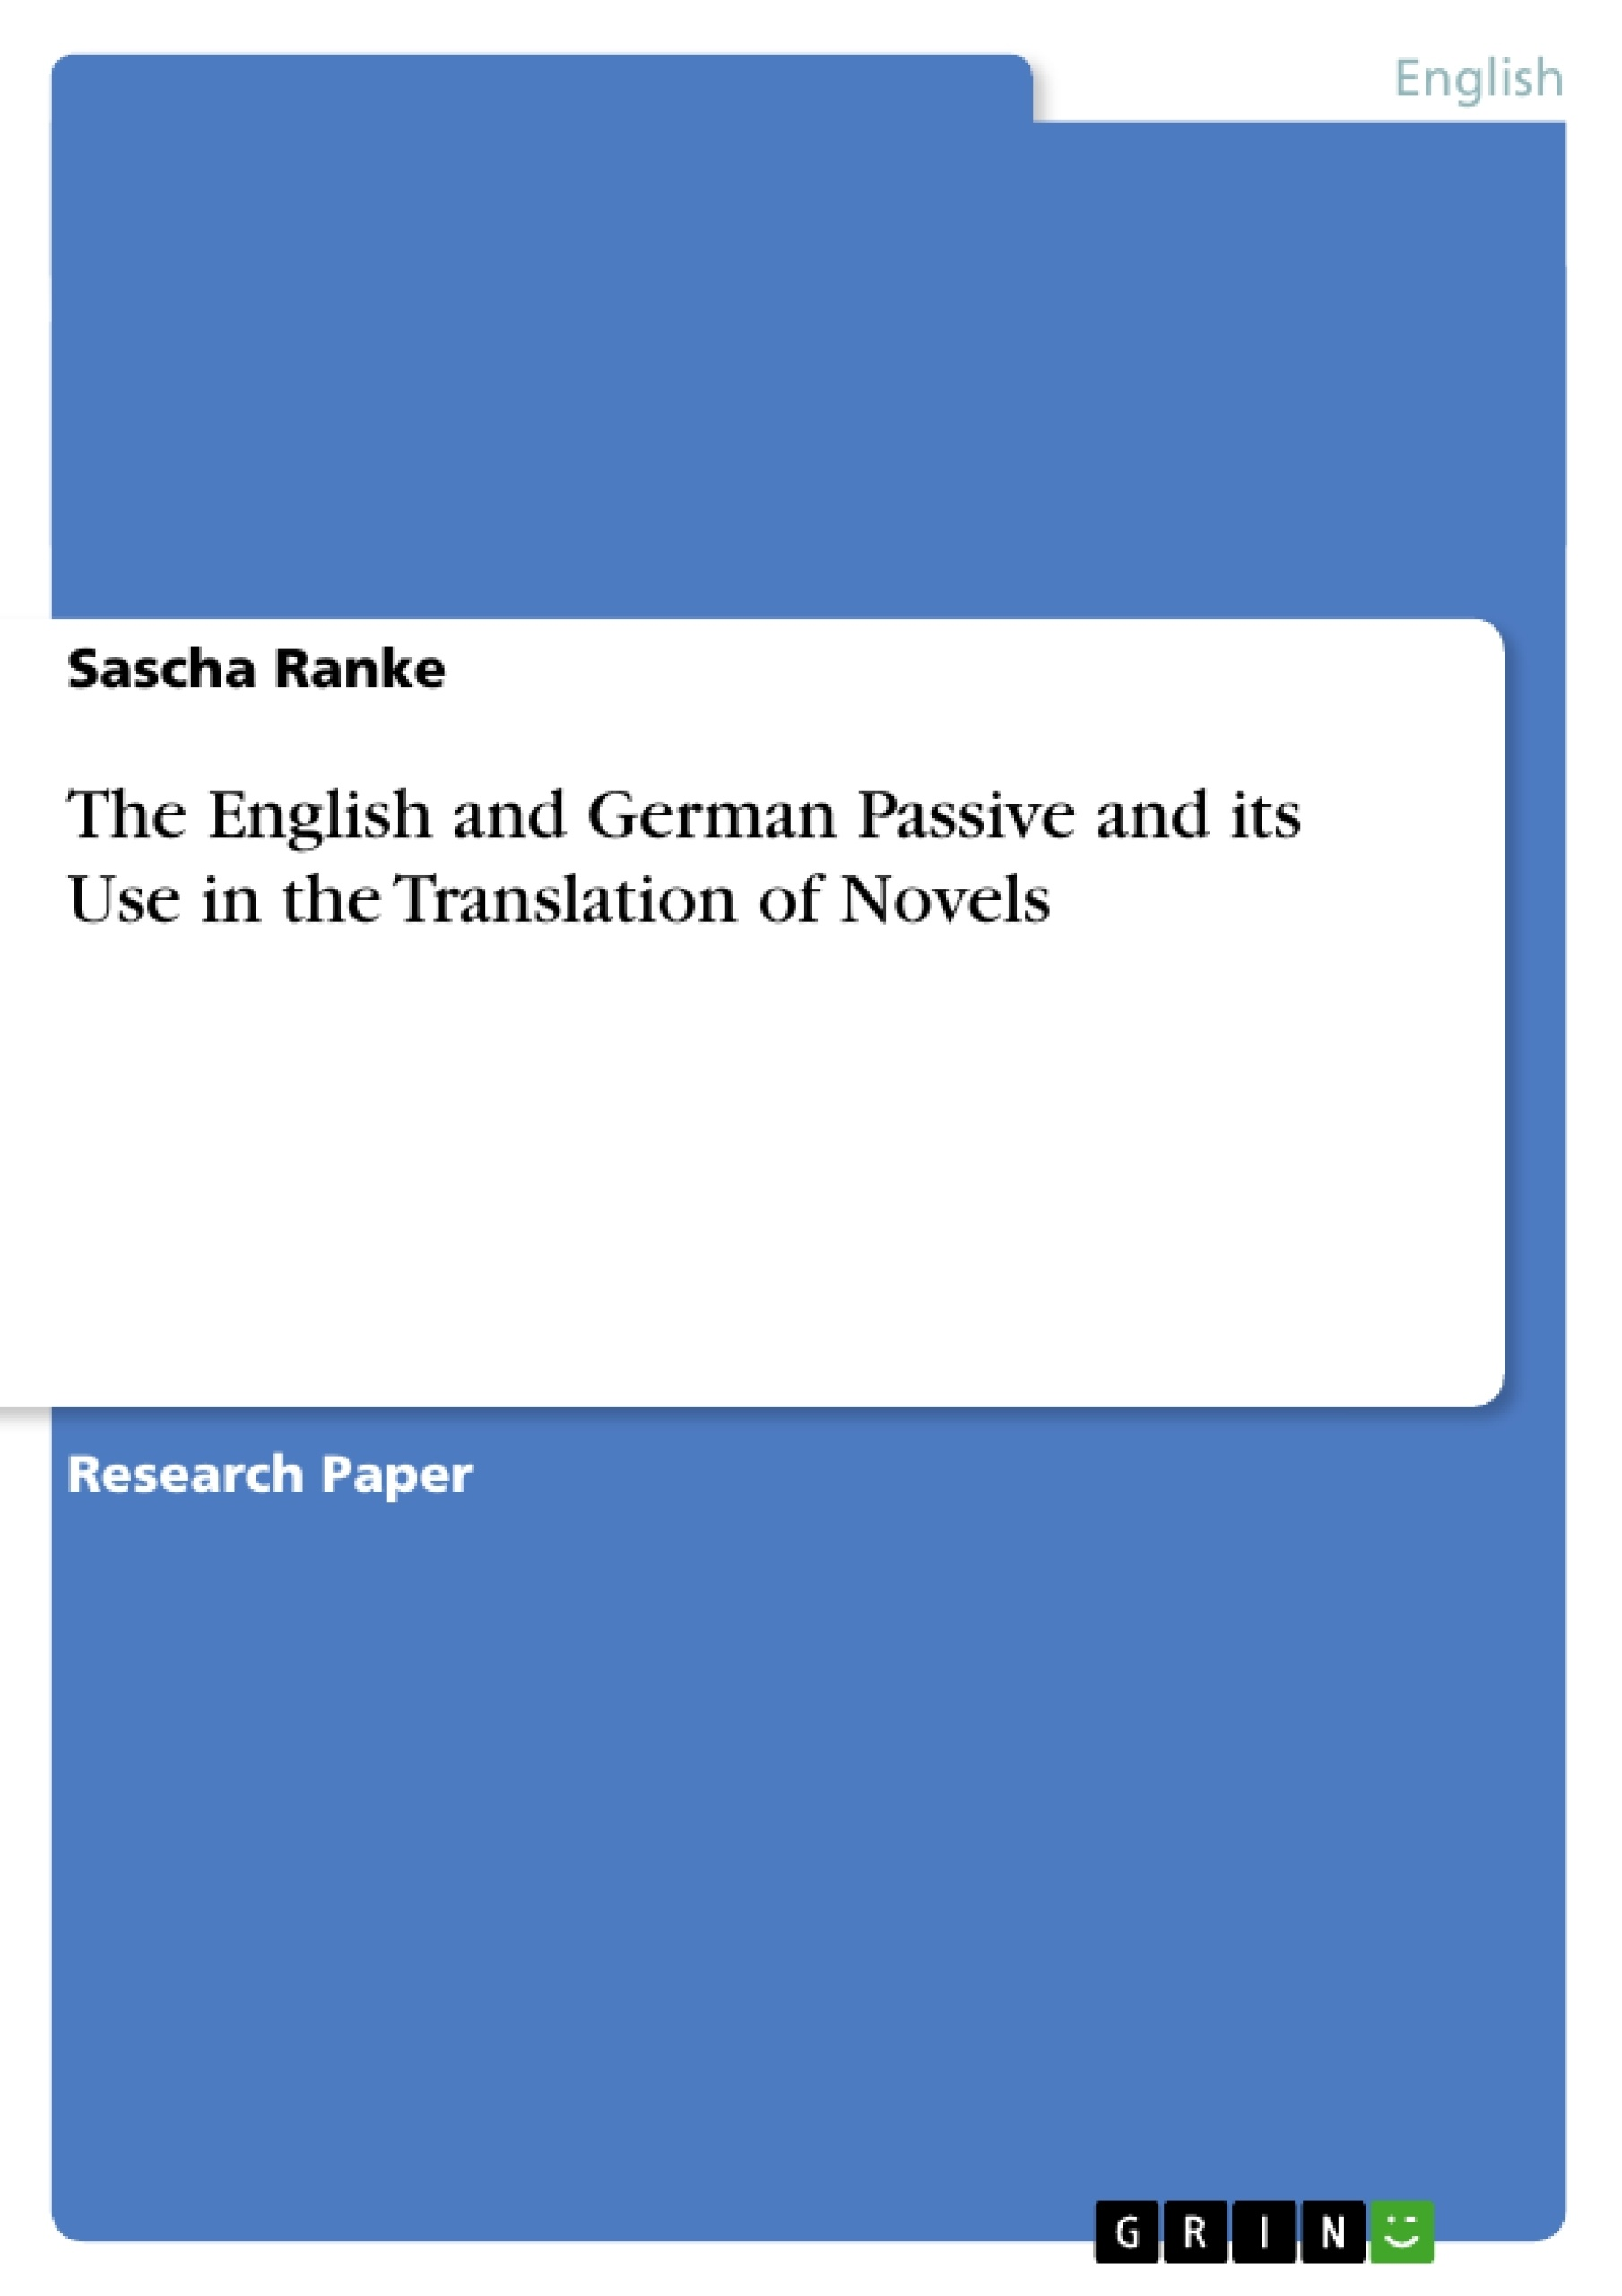 Title: The English and German Passive and its Use in the Translation of Novels